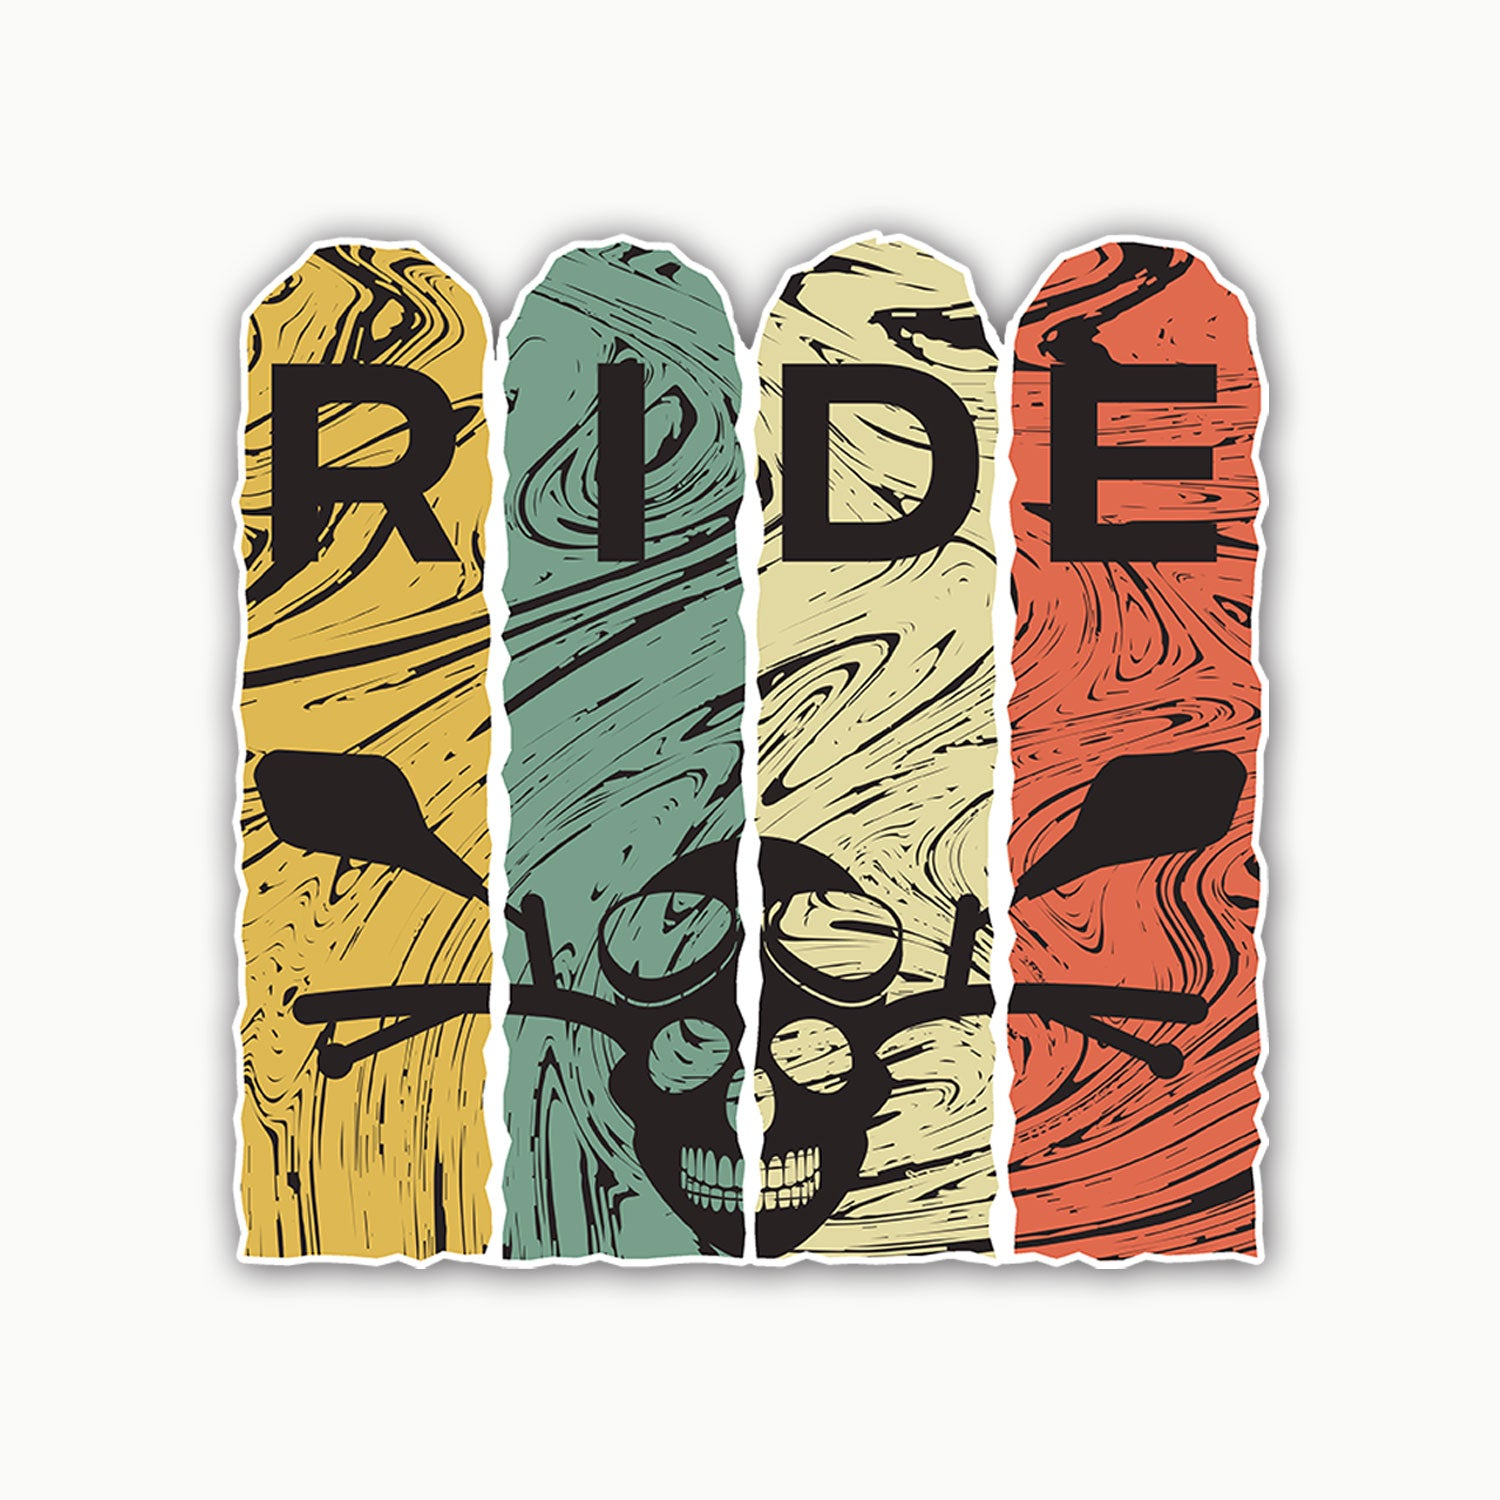 Ride | Sticker